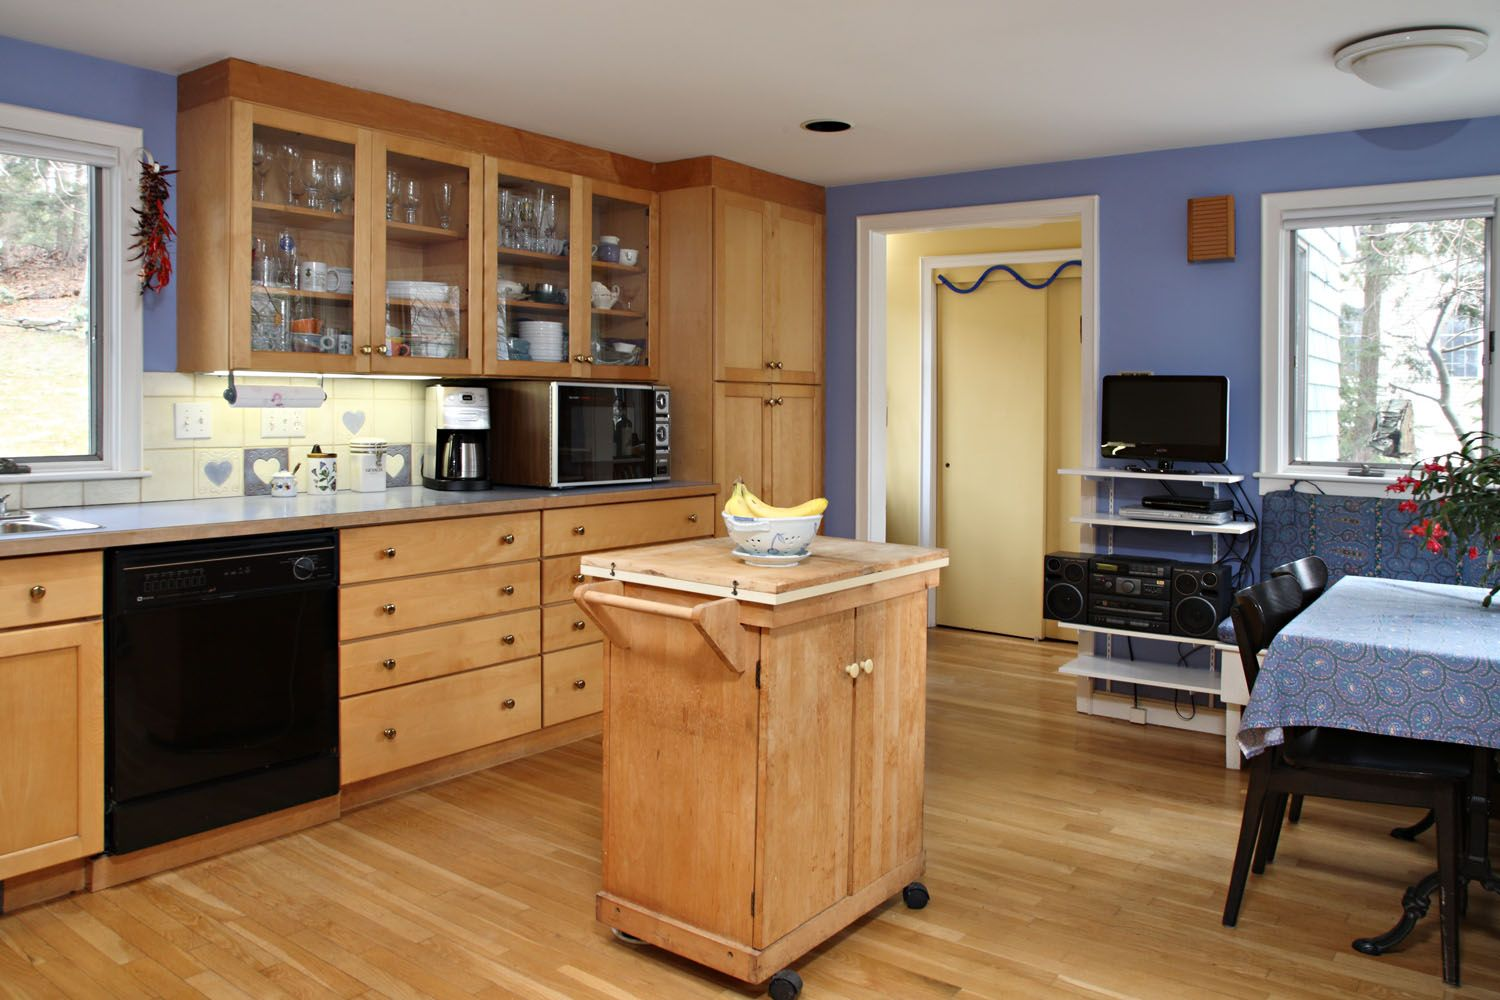 Natural Design Of The Kitchen Paint Color With Maple Cabinets And Woodern  Floor